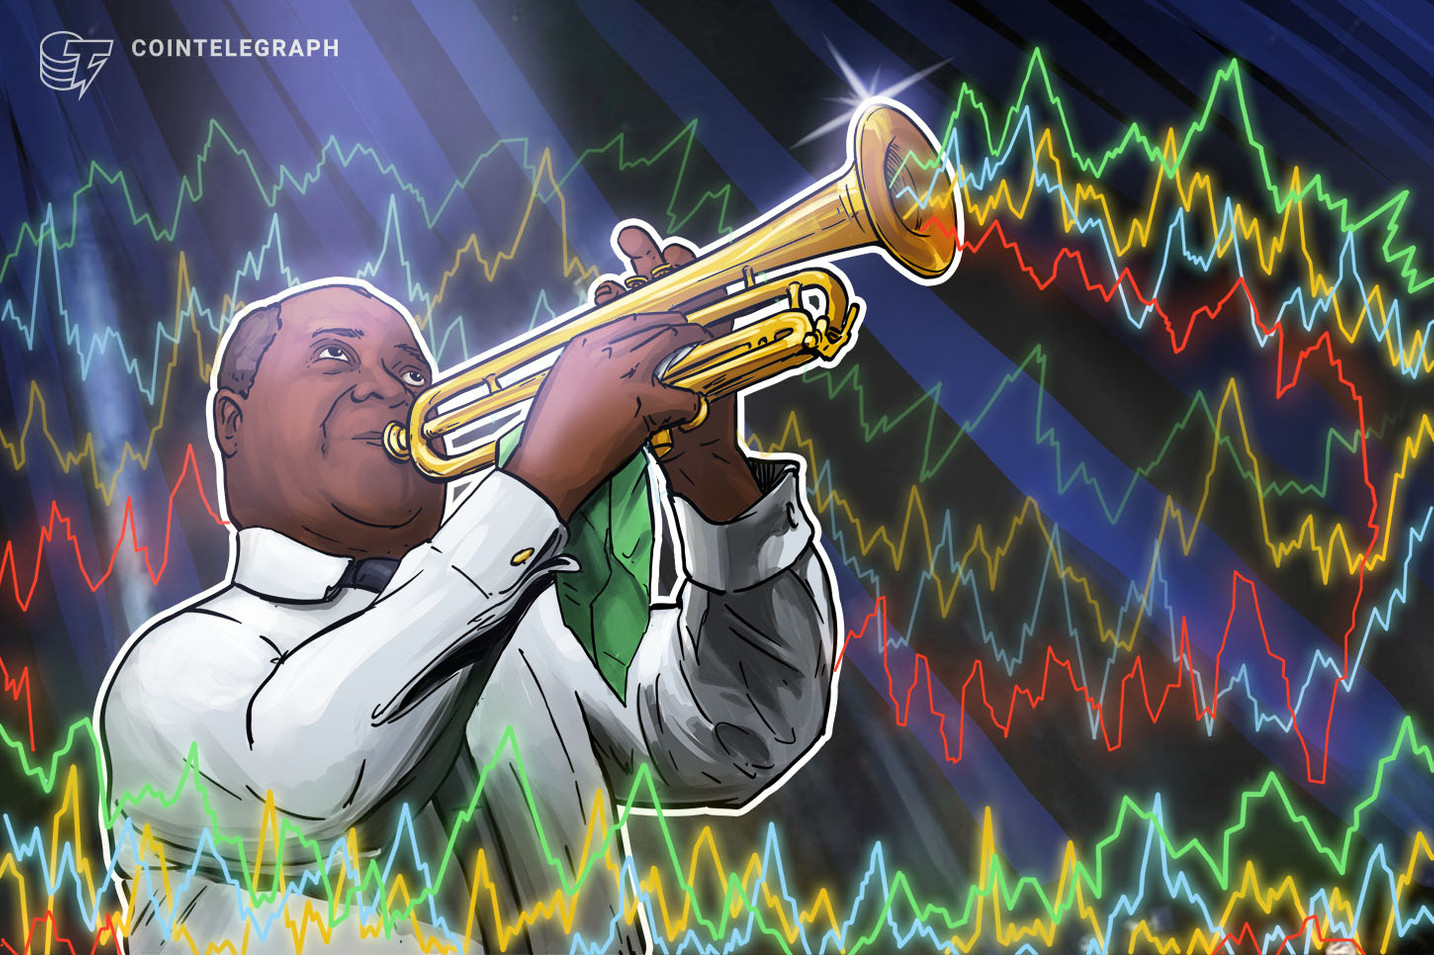 Top Coins See Mixed Signals, Bitcoin Hovers Near $9,700